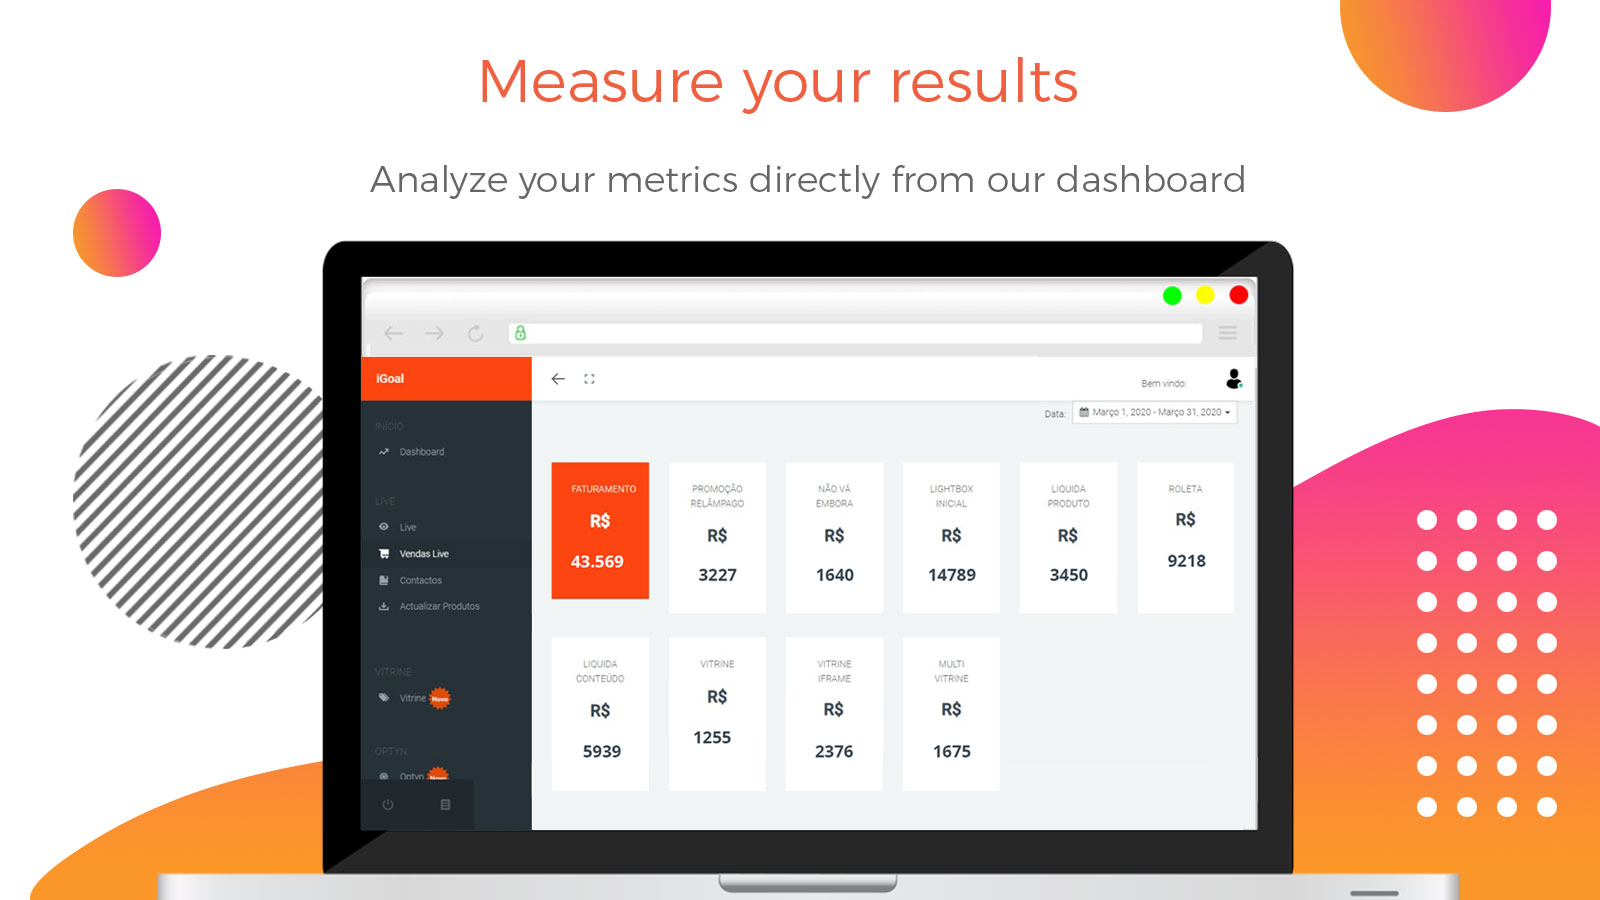 Measure your results